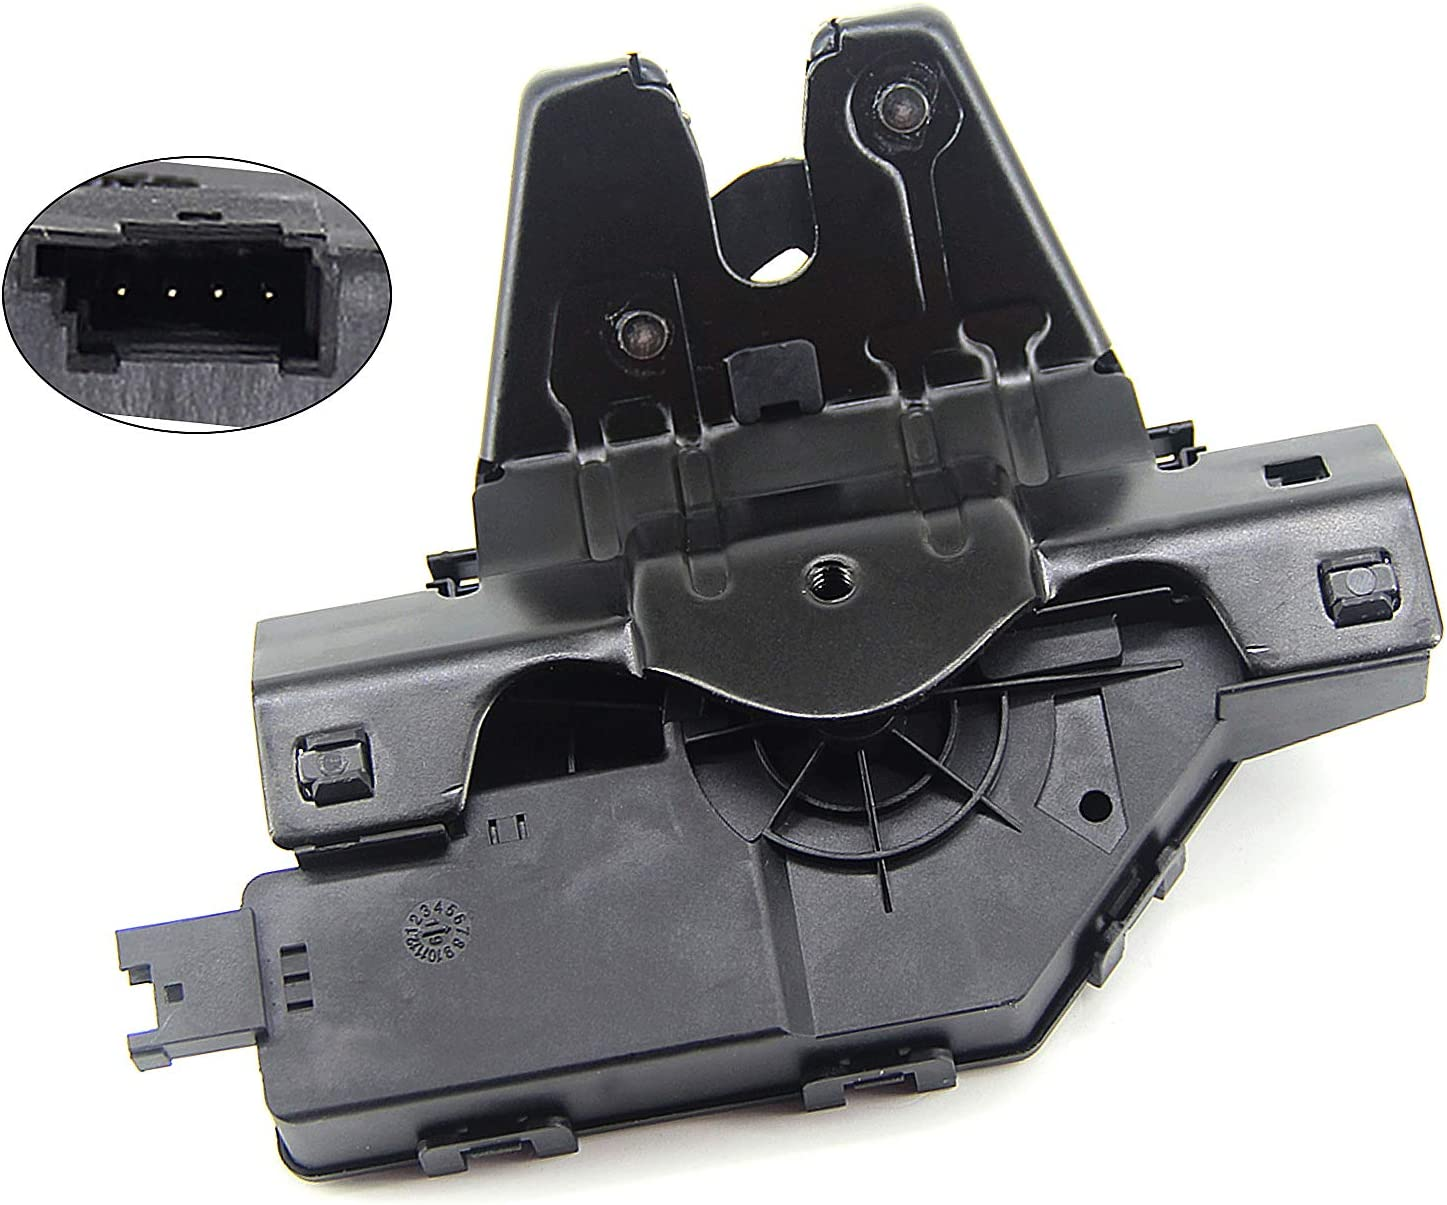 USTAR Tailgate Lock Trunk Latch Actuator for BMW E82 E88 E46 E90 E91 E92 E93 E60 E61 E85 E86 M3 M5 M6 1999-2010 Replaces 51247840617